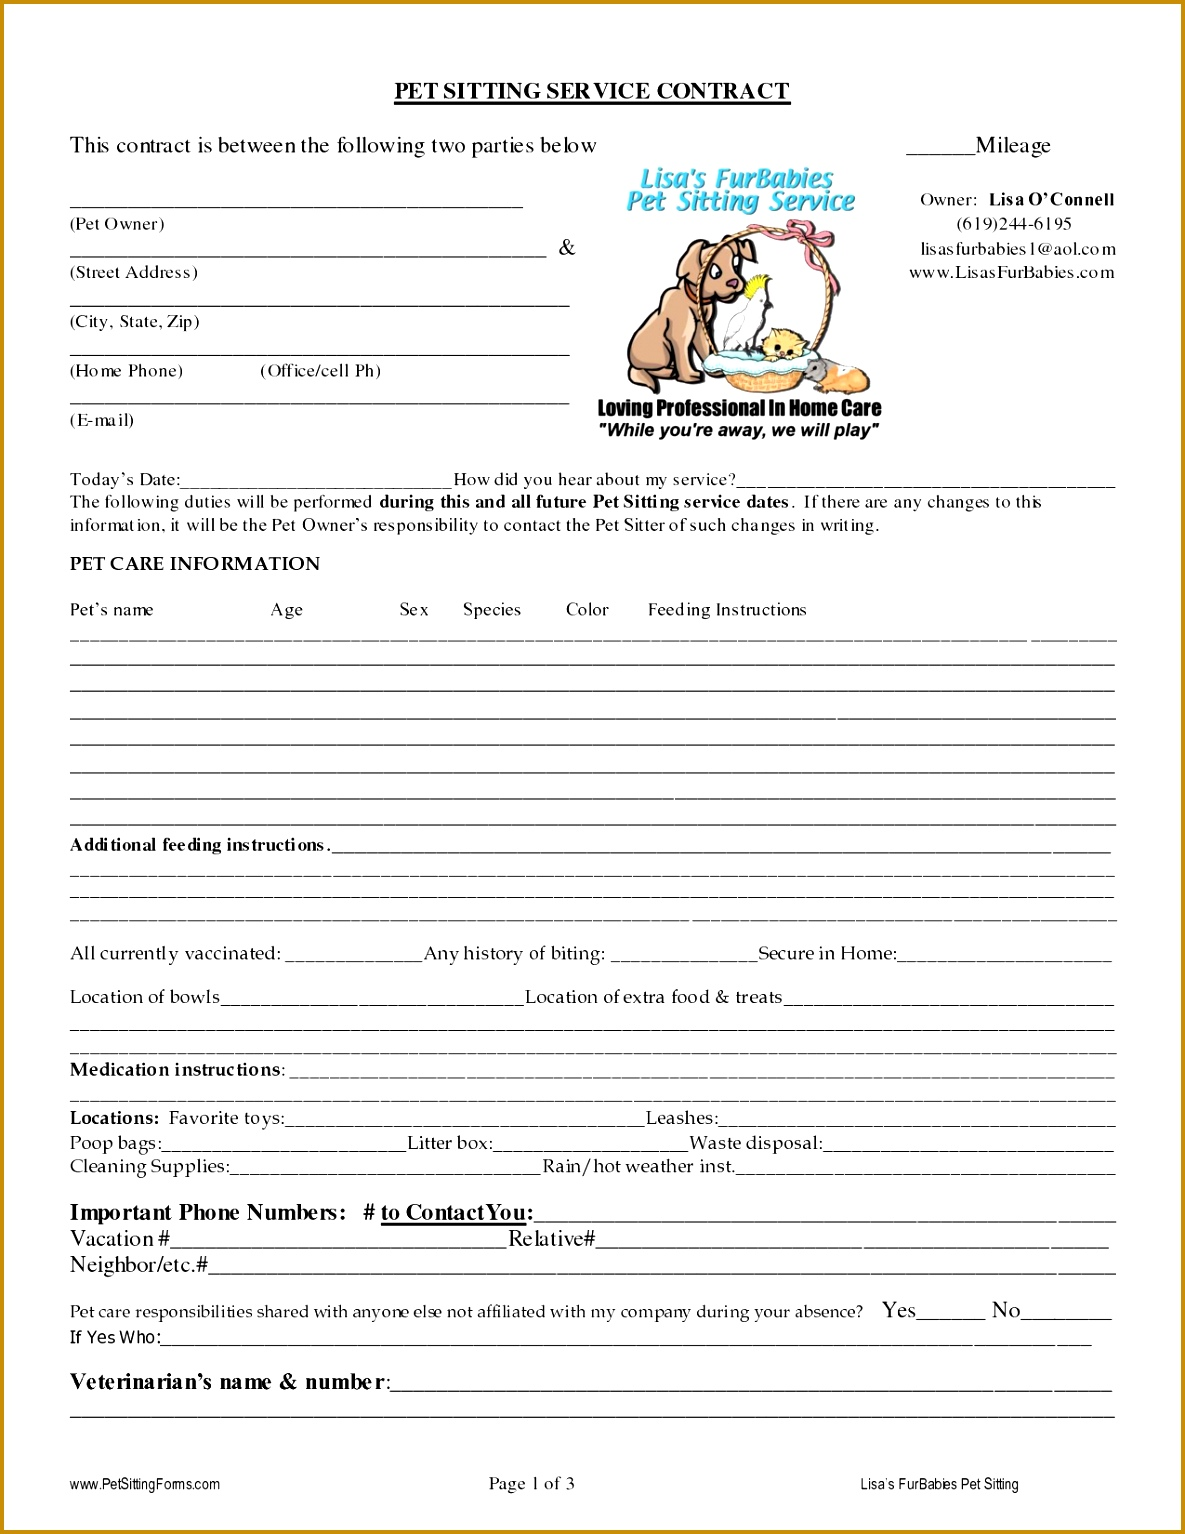 3 Client Profile Worksheet For Pet Keeping